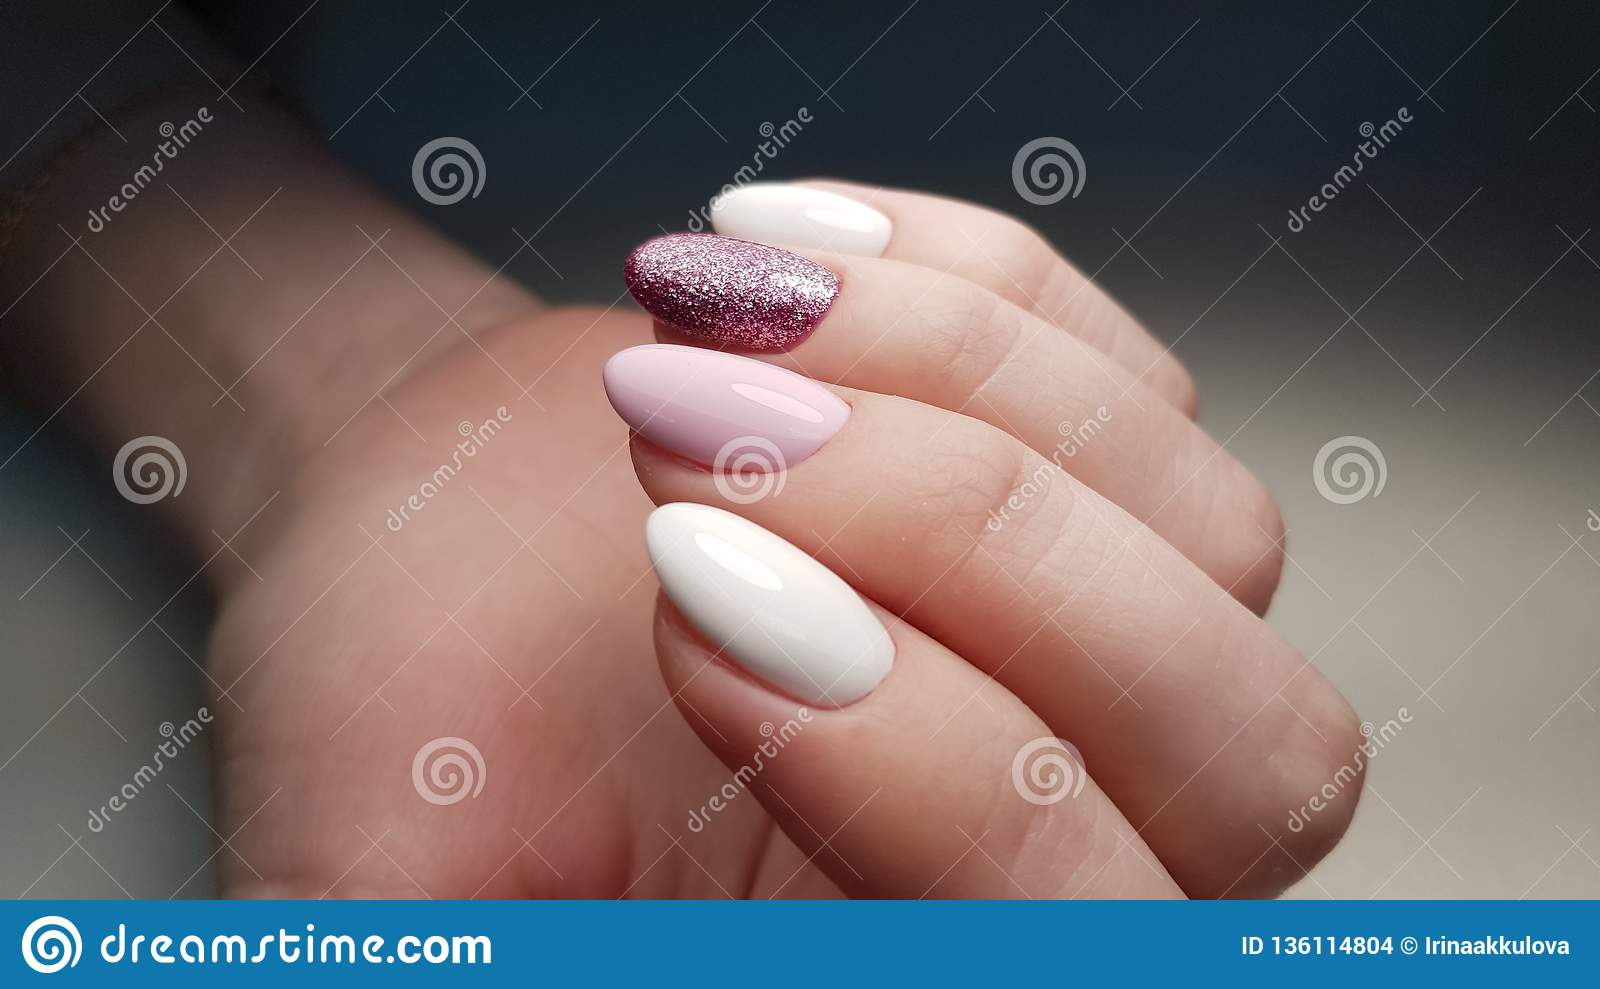 Girly Nails Pink And White Stock Photo Image Of Christmas 136114804